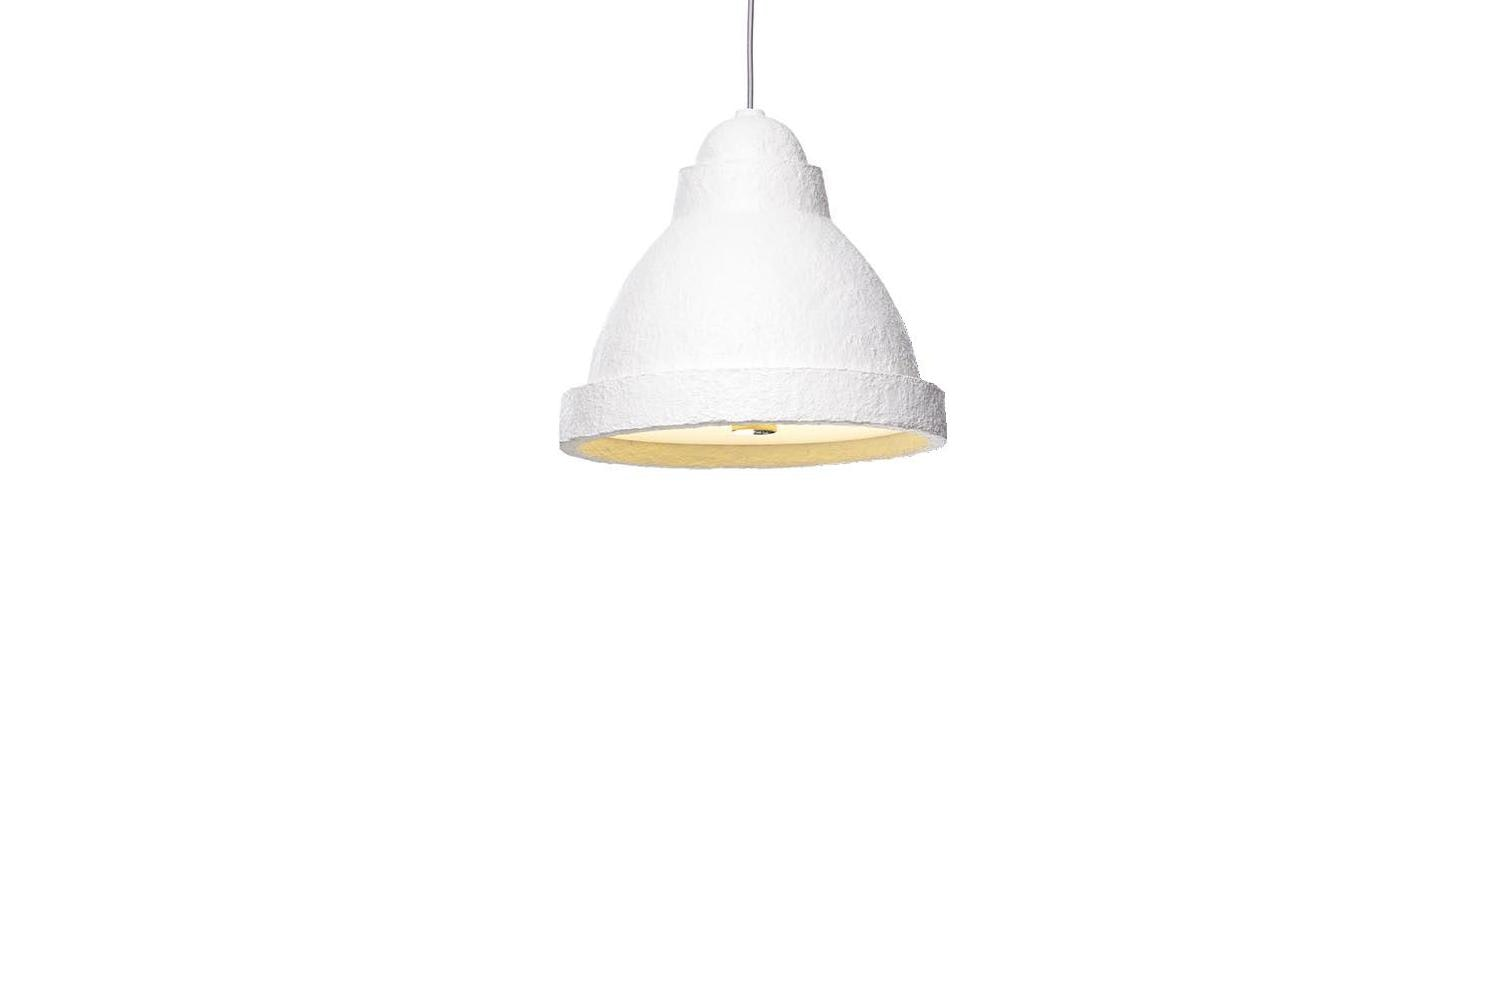 Salago Small Suspension Lamp by Danny Fang for Moooi